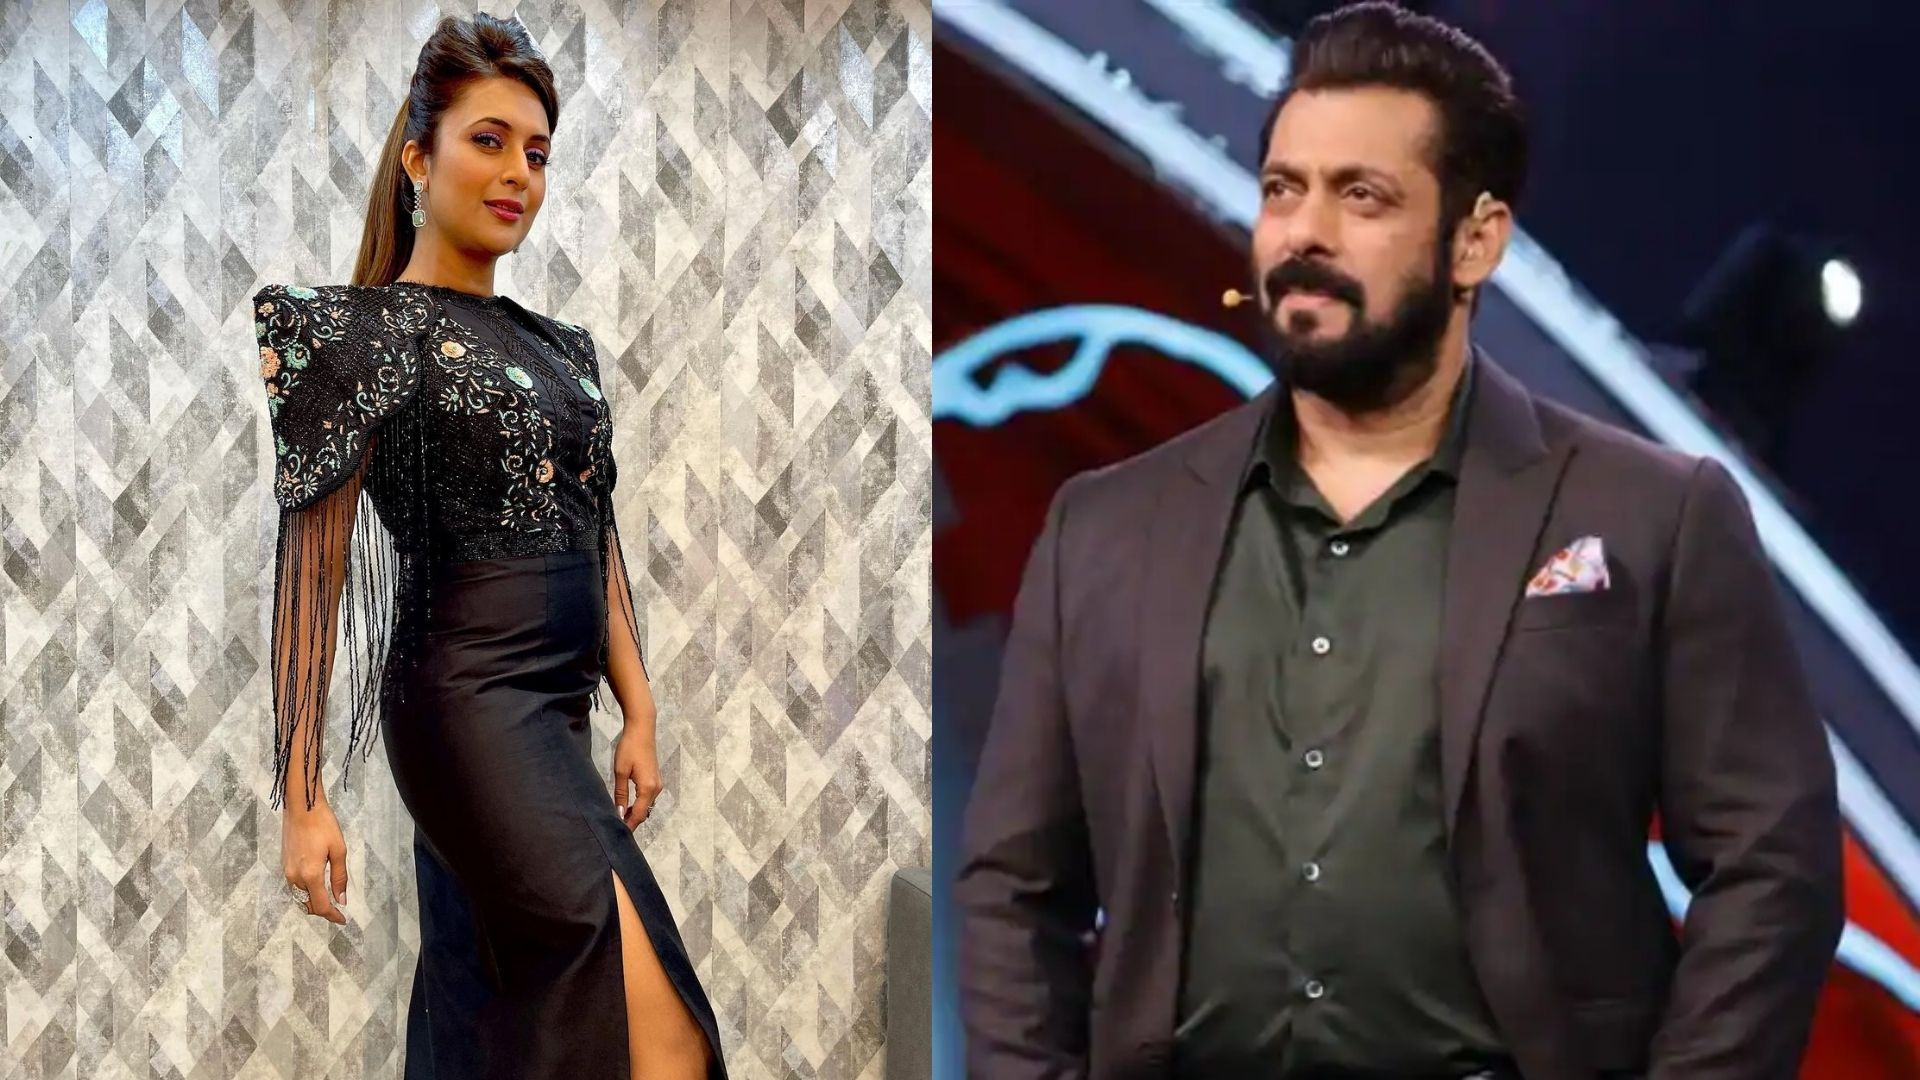 Bigg Boss 15: Divyanka Tripathi Finally Spilts The Beans On Why She Rejected Salman Khan's Controversial Reality Show